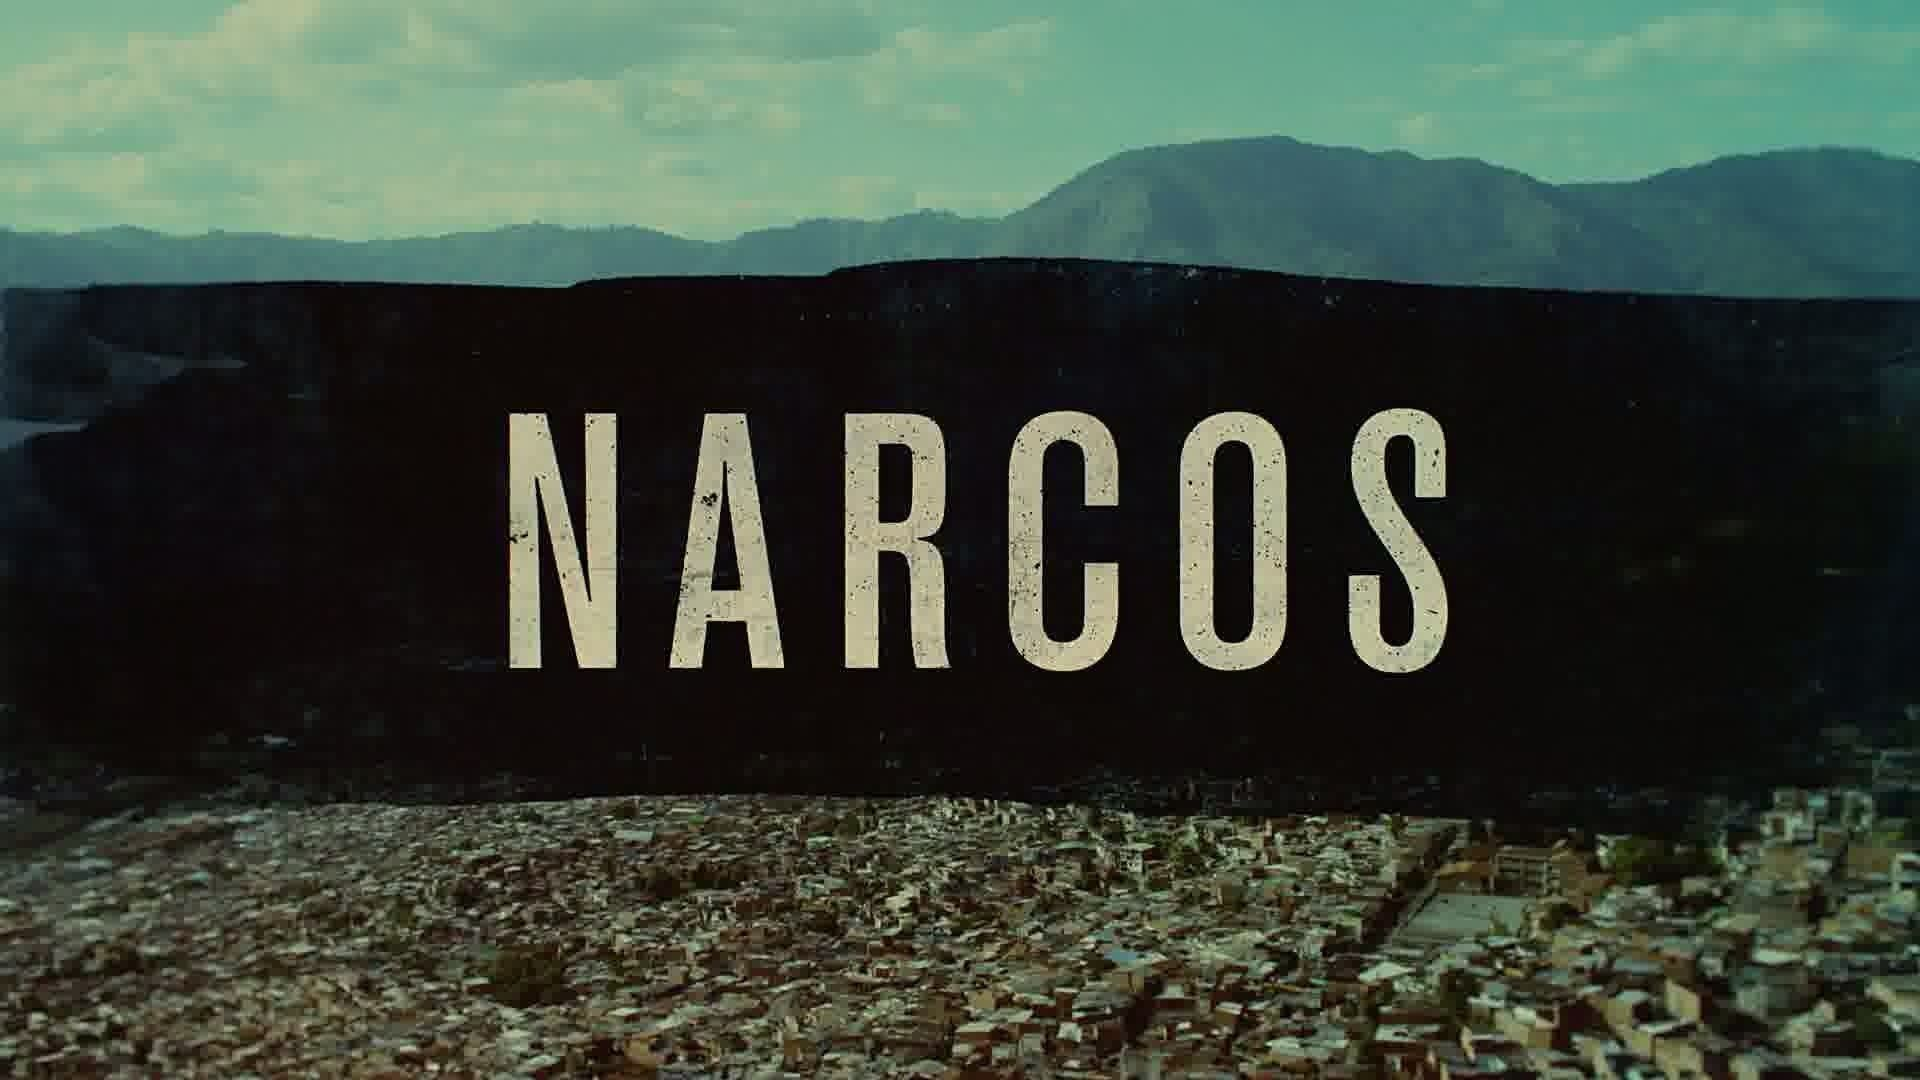 4K Narcos Wallpapers Desktop, Android and iPhone - The ...